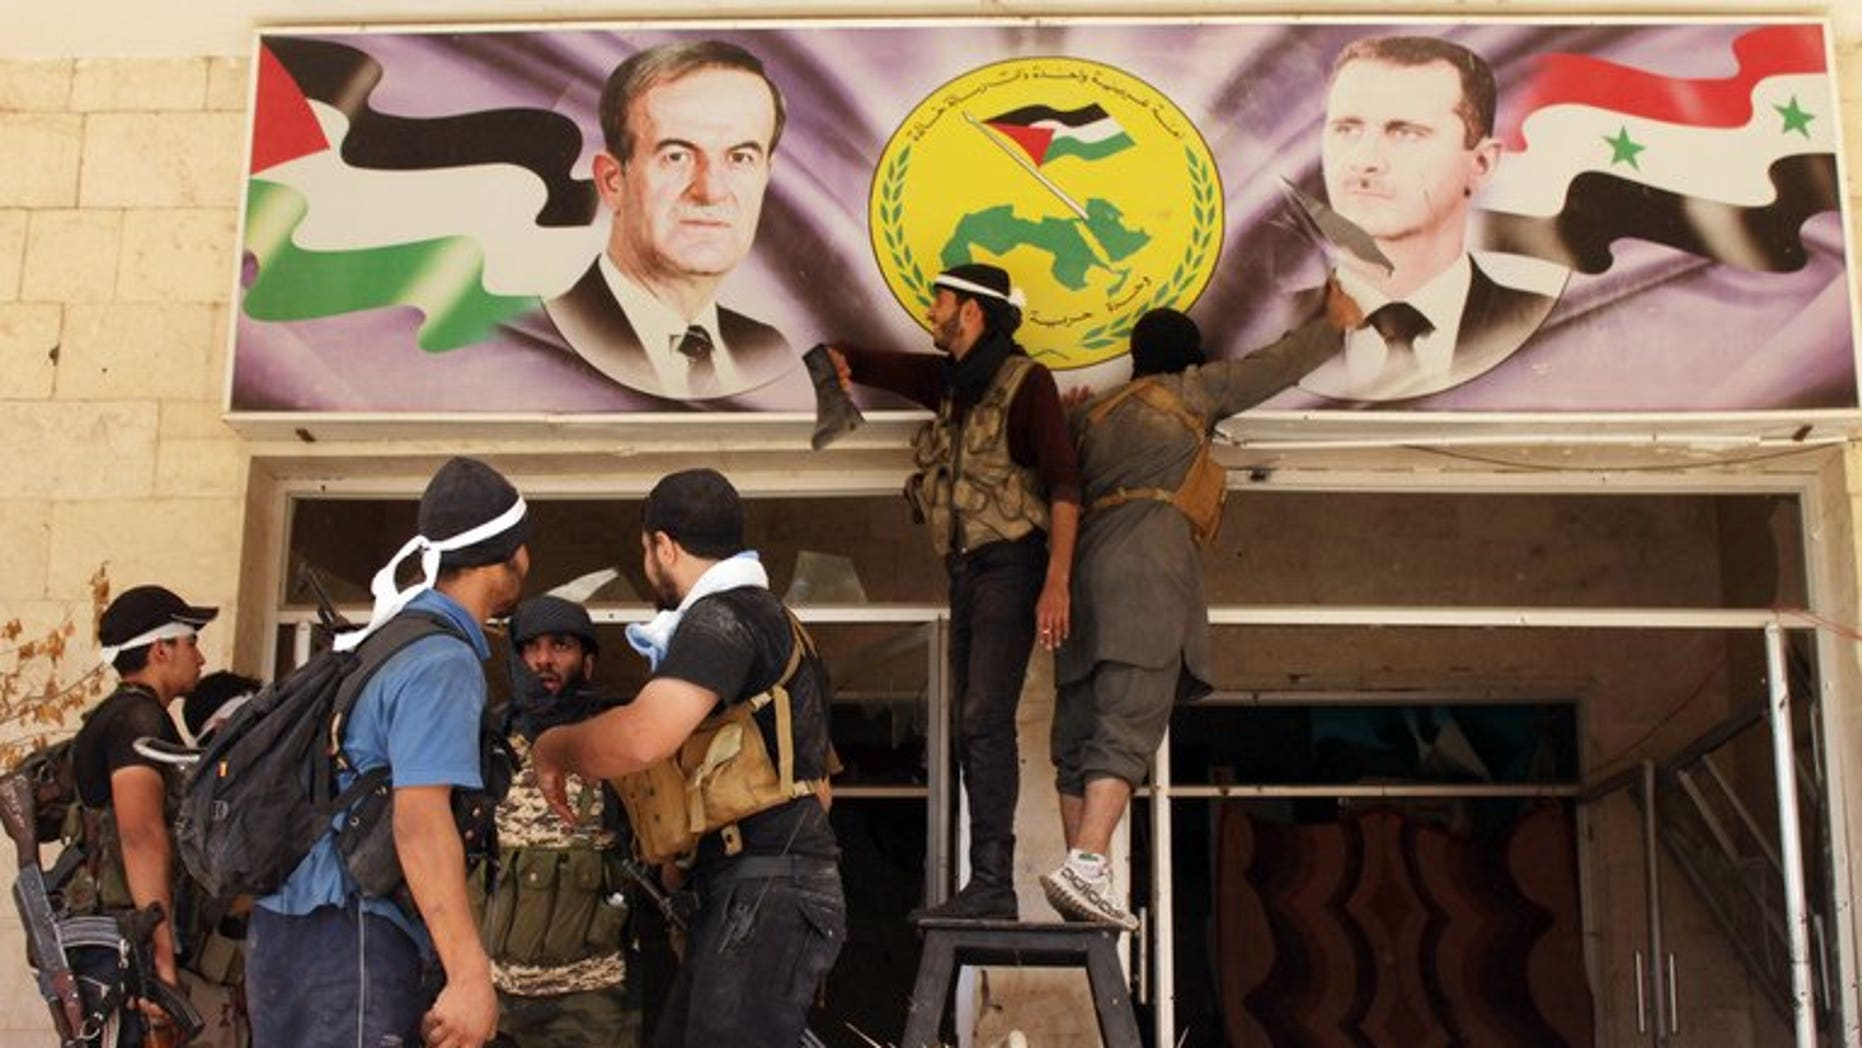 Rebel fighters tear down a poster of Syrian President Bashar al-Assad (R) and his late father and predecessor Hafez al-Assad (L) in the town of Deir Ezzor, on August 10, 2013. Nearly 60 Syrian soldiers and jihadists have been killed in three days of fighting in Deir Ezzor, the largest city in eastern Syria, where rebels have made advances, an NGO said Monday.